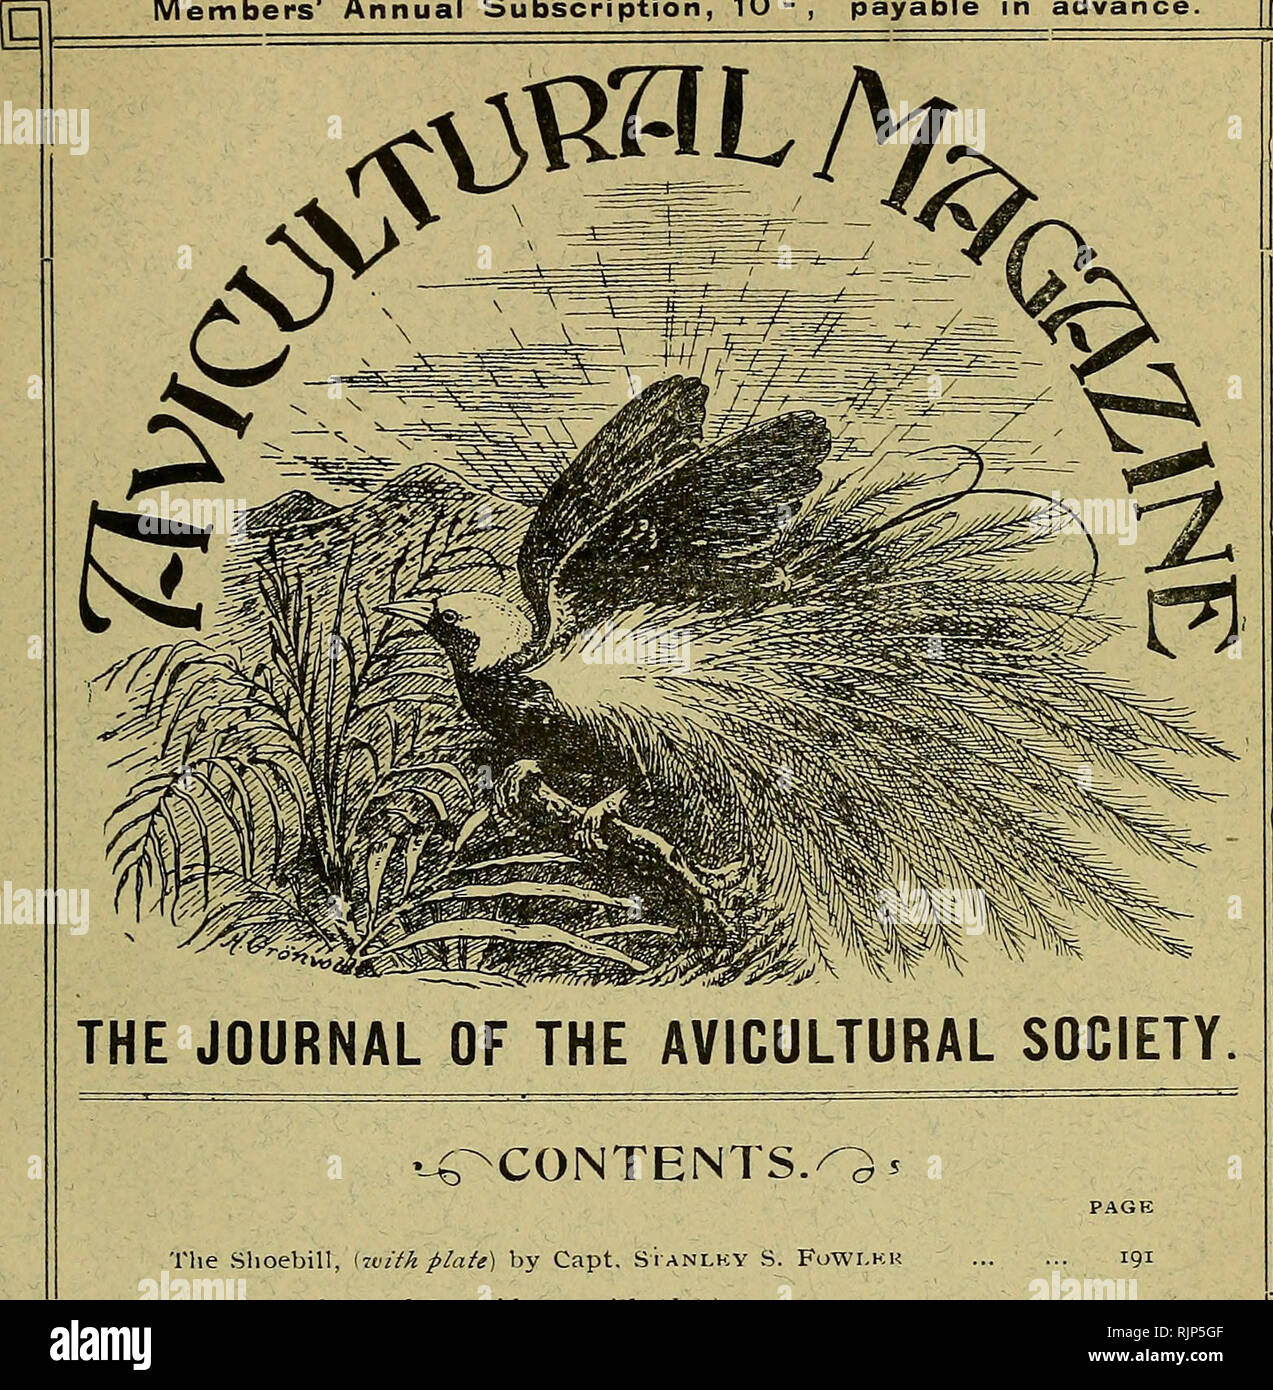 . The Avicultural magazine. Birds; Cage birds. NEW SERIES Vol. VI. No. 7 MONTHLY. MAY, 1908 Price i^- 6**- Members' Annual Subscription, 10 - ; payable in advance. [pjj The Slioebill, izvith flaie) by Capt. Stanlky S. FoWLkr Tlie Crested Wood Partridg-e, (â with plntf) by HUBKRT D. ASTI.ICY, K.Z.S., M.B.O.U. Successful Hird-keepiiig- in Cages, by K. Wakrkn Vkknon The Black-cheeked r.ovebird, by Kkginald Phillipps The Mind of a Bird, by Dr. A. G. Buti.kr Notices of Nkw Books, etc. : The Briti.sh Warblers British Birds The Society's Medal ... COUUESPONDKNCK ; Inheritance from Previous Marriag-e, - Stock Image